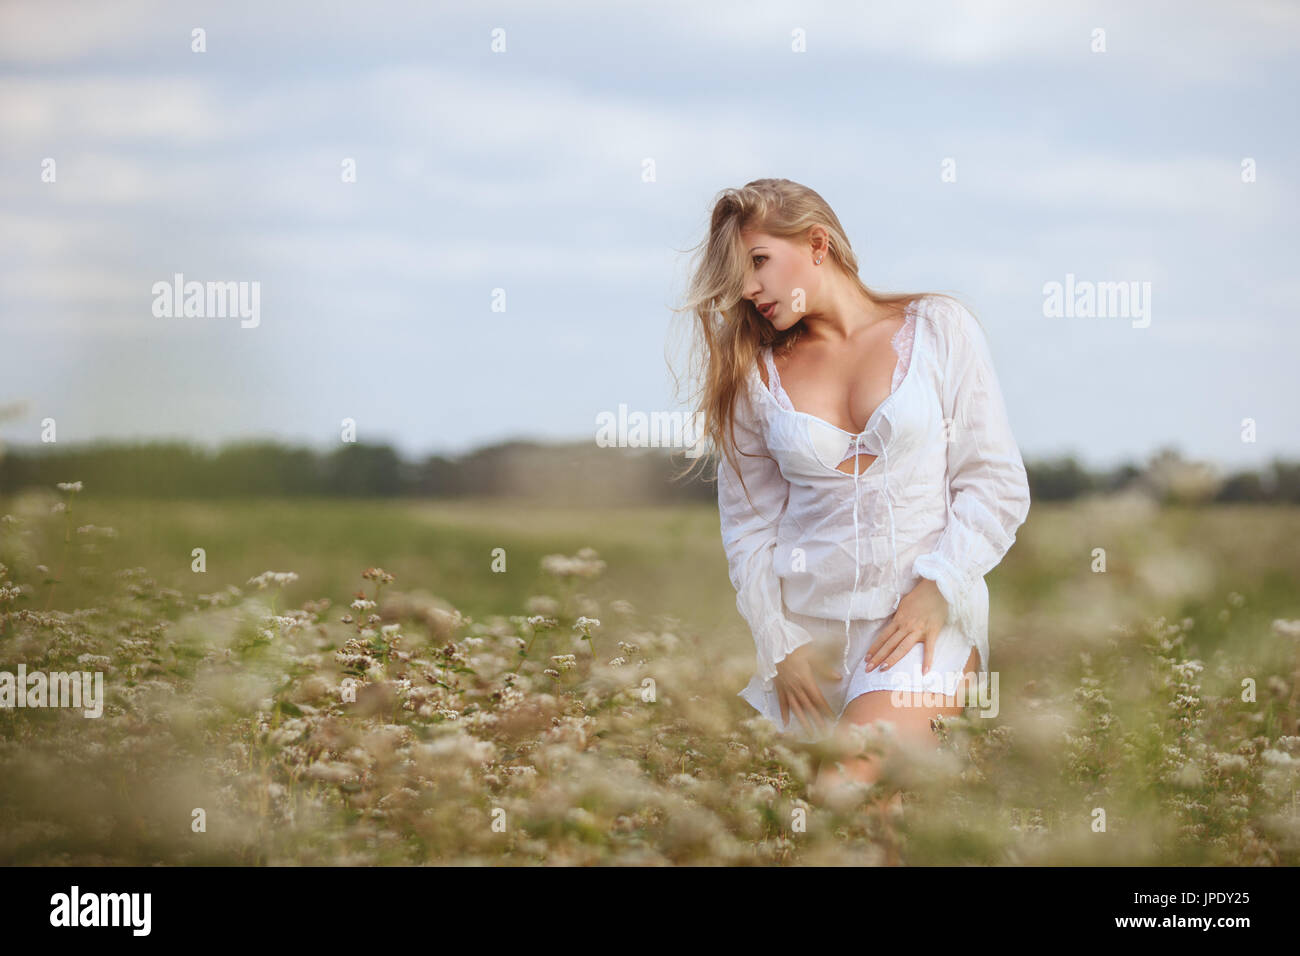 Beautiful woman in a field among the tall grass is nurtured by nature. Stock Photo